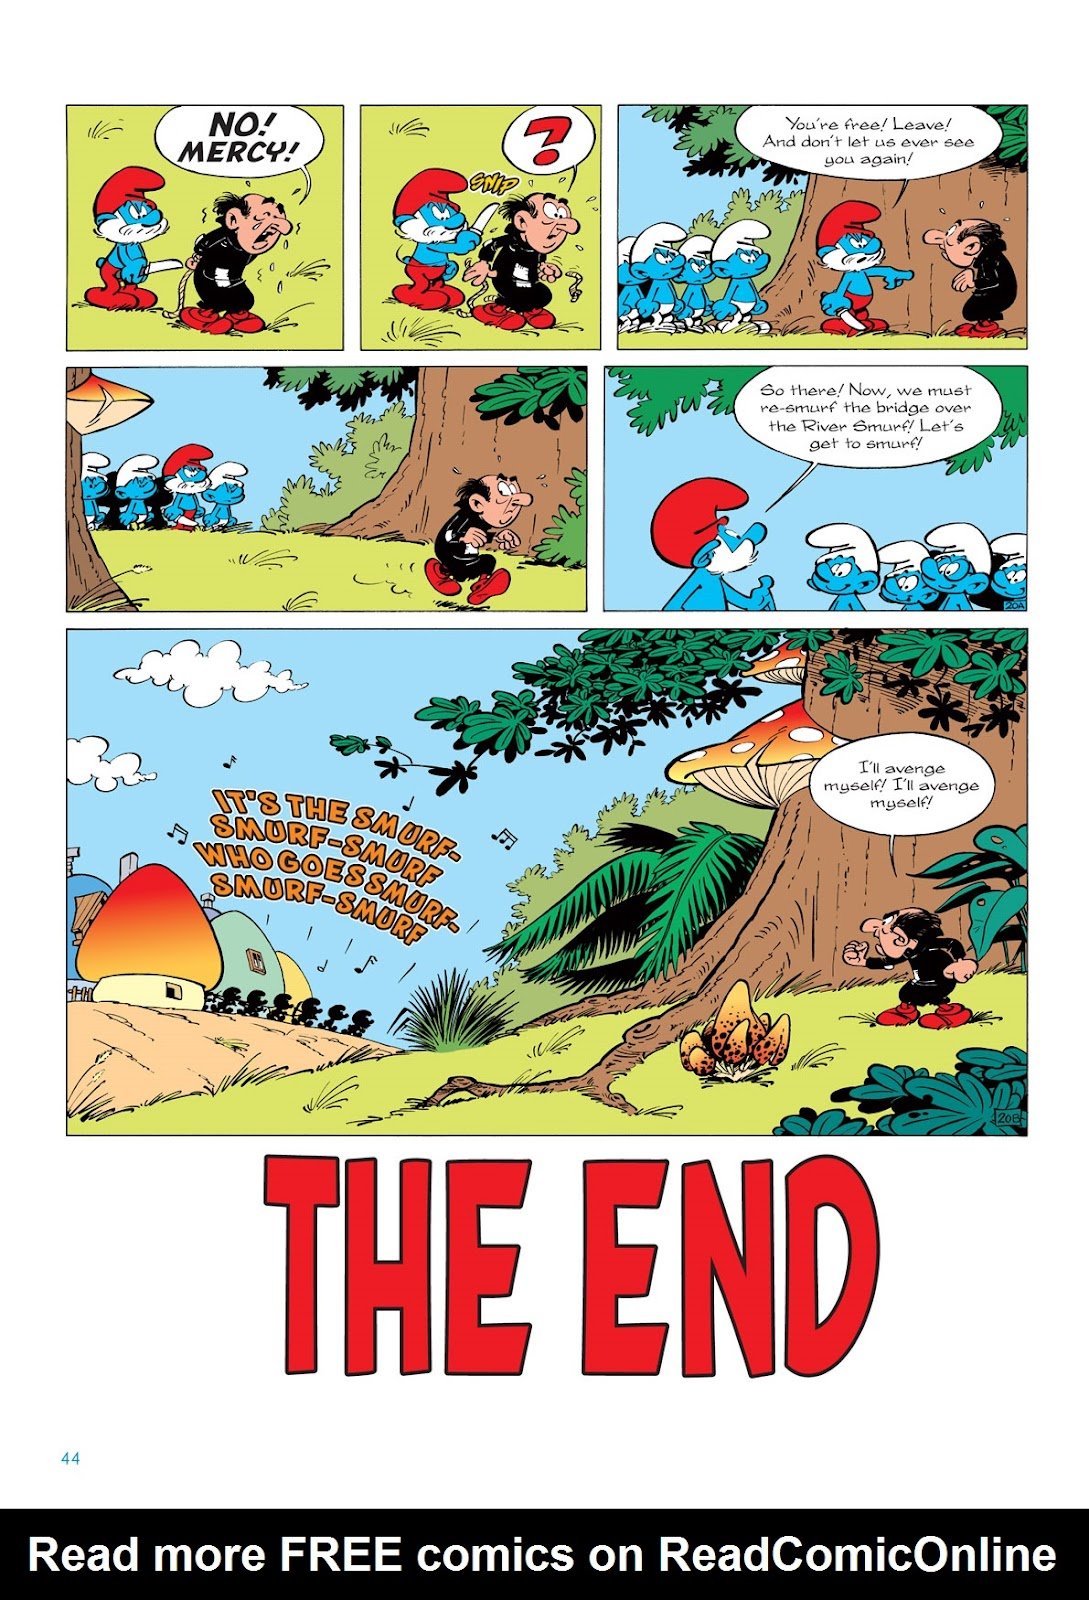 Read online The Smurfs comic -  Issue #5 - 44